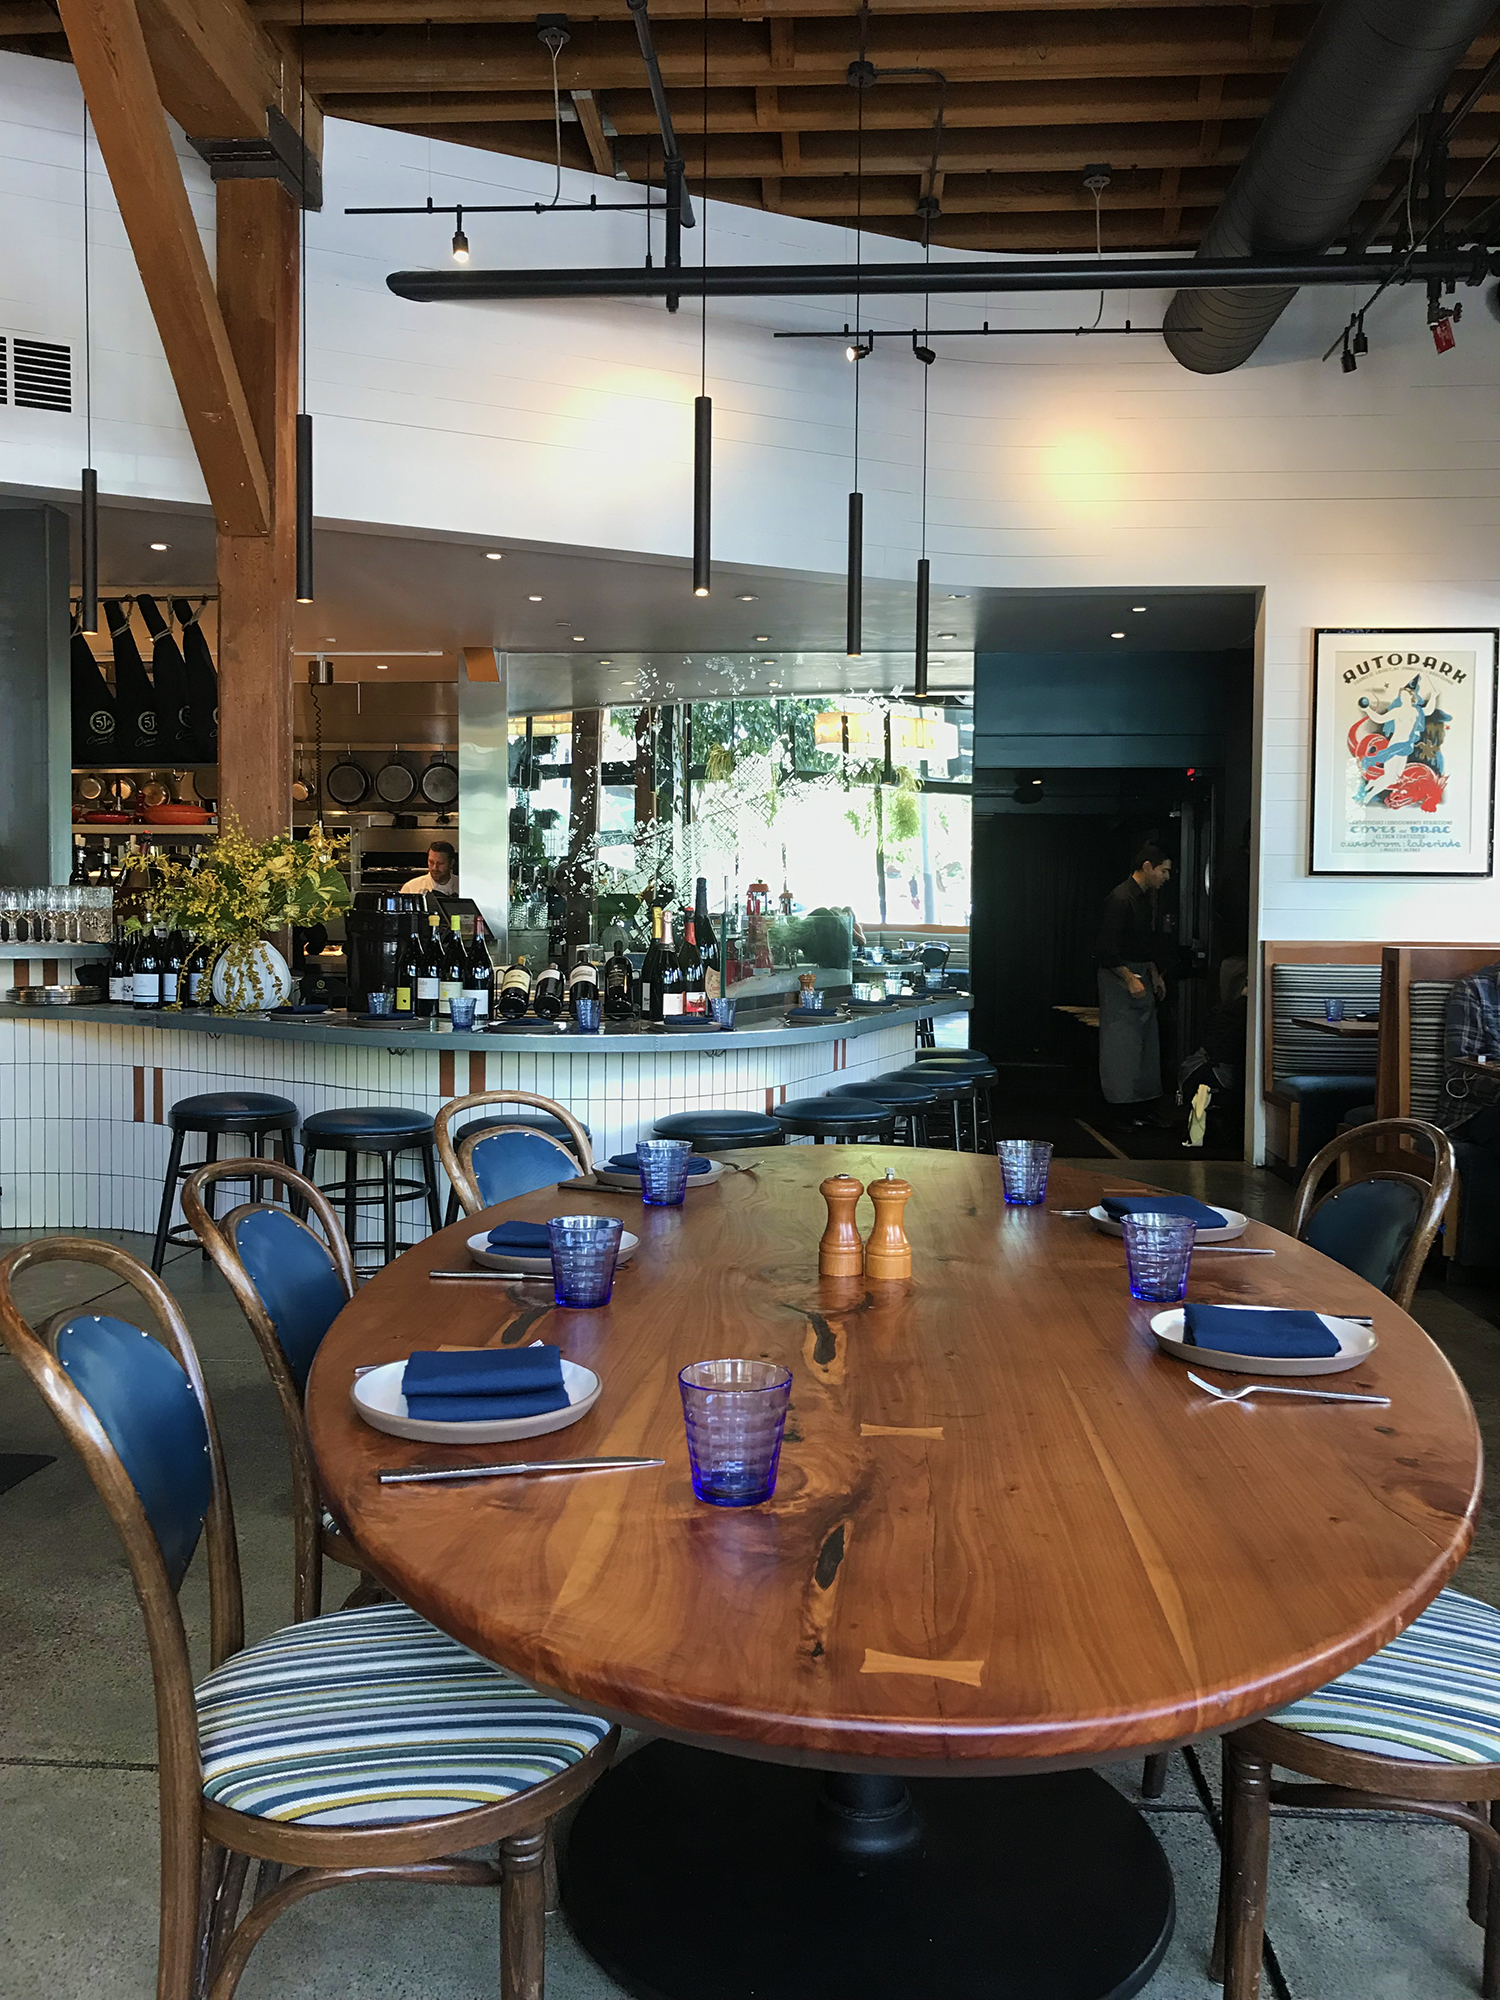 Newly Opened Brunch at Barcino